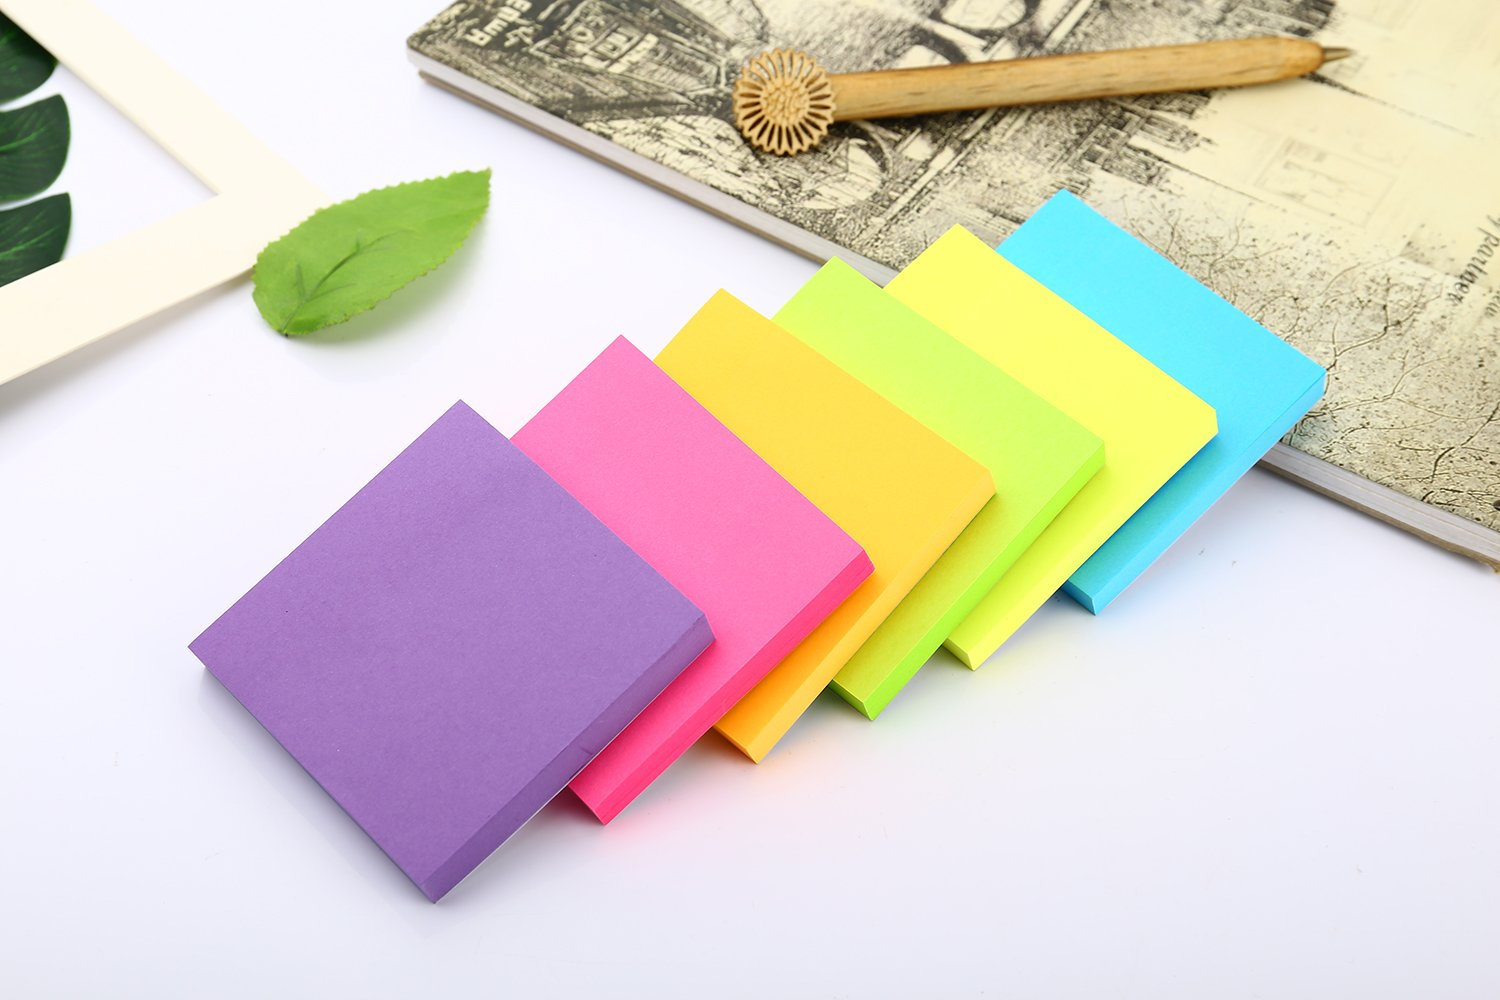 Sticky Notes, 3 in x 3 in, 12 Pads/Pack,100 Sheets/Pad, 6 Bright Colors Self-Stick Notes for Home,Office, School, Easy Post. by ERBAO (Image #4)